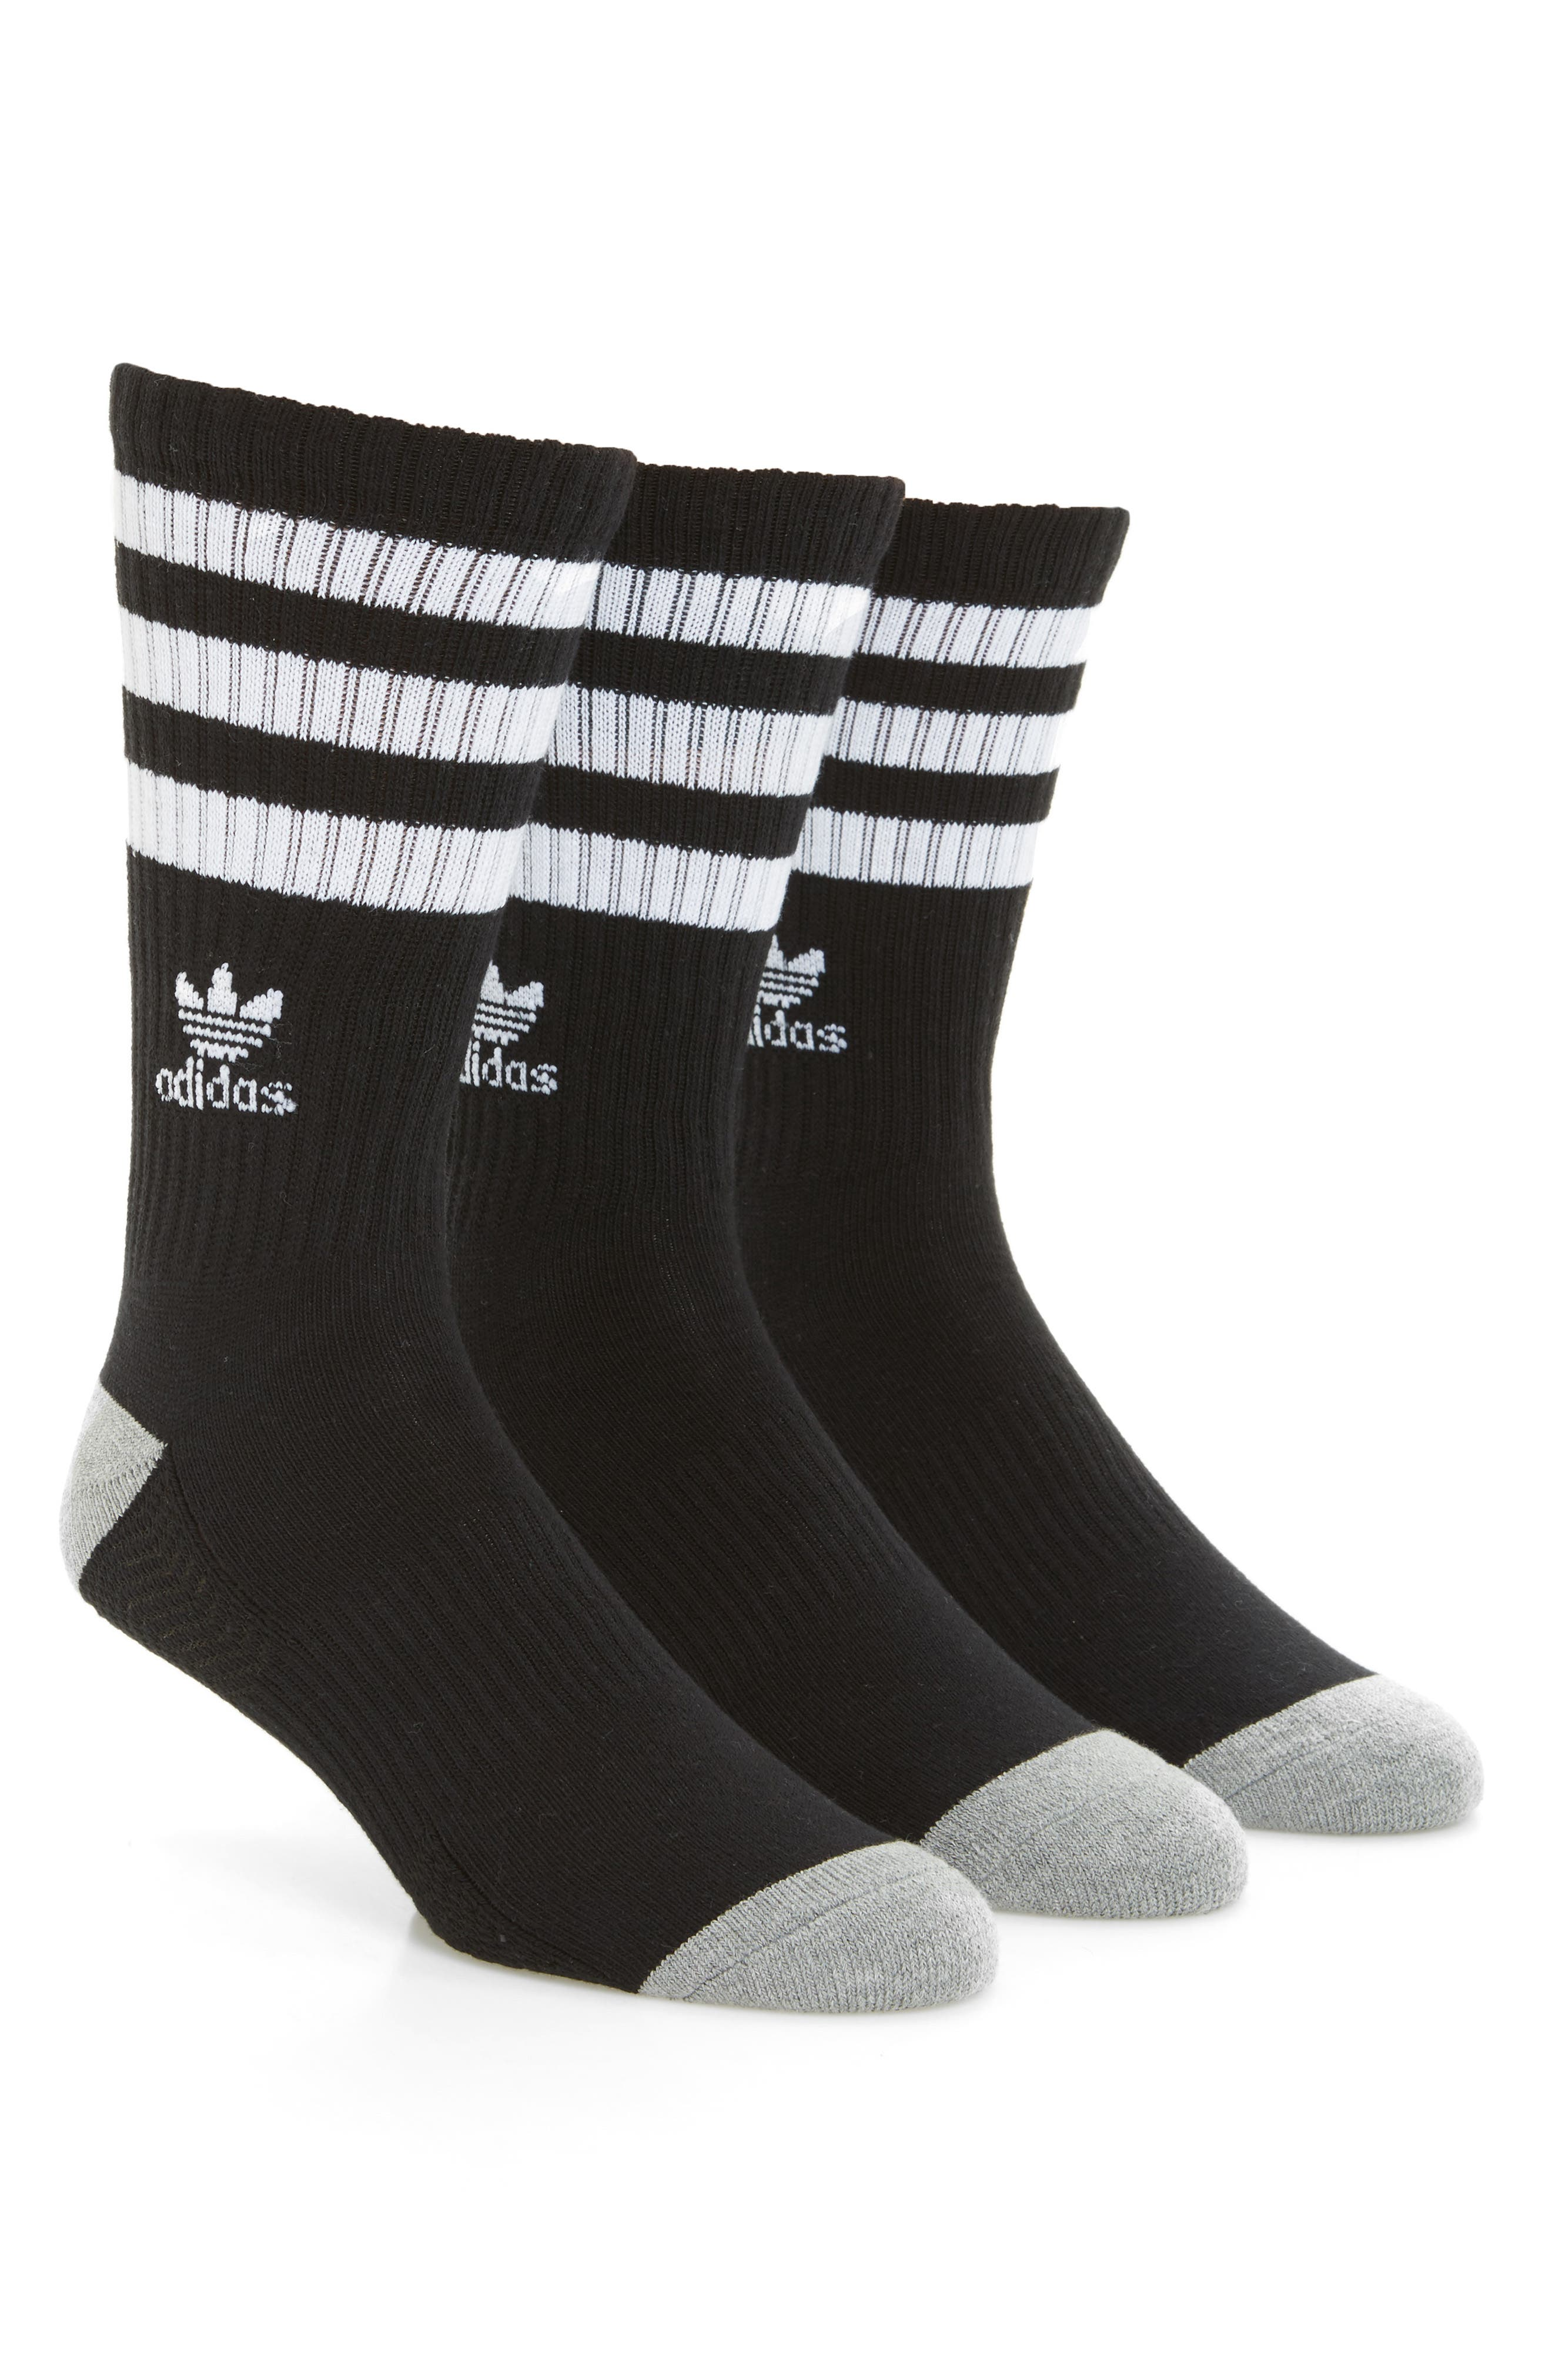 ADIDAS ORIGINALS, 3-Pack Original Roller Crew Socks, Main thumbnail 1, color, BLACK/ WHITE